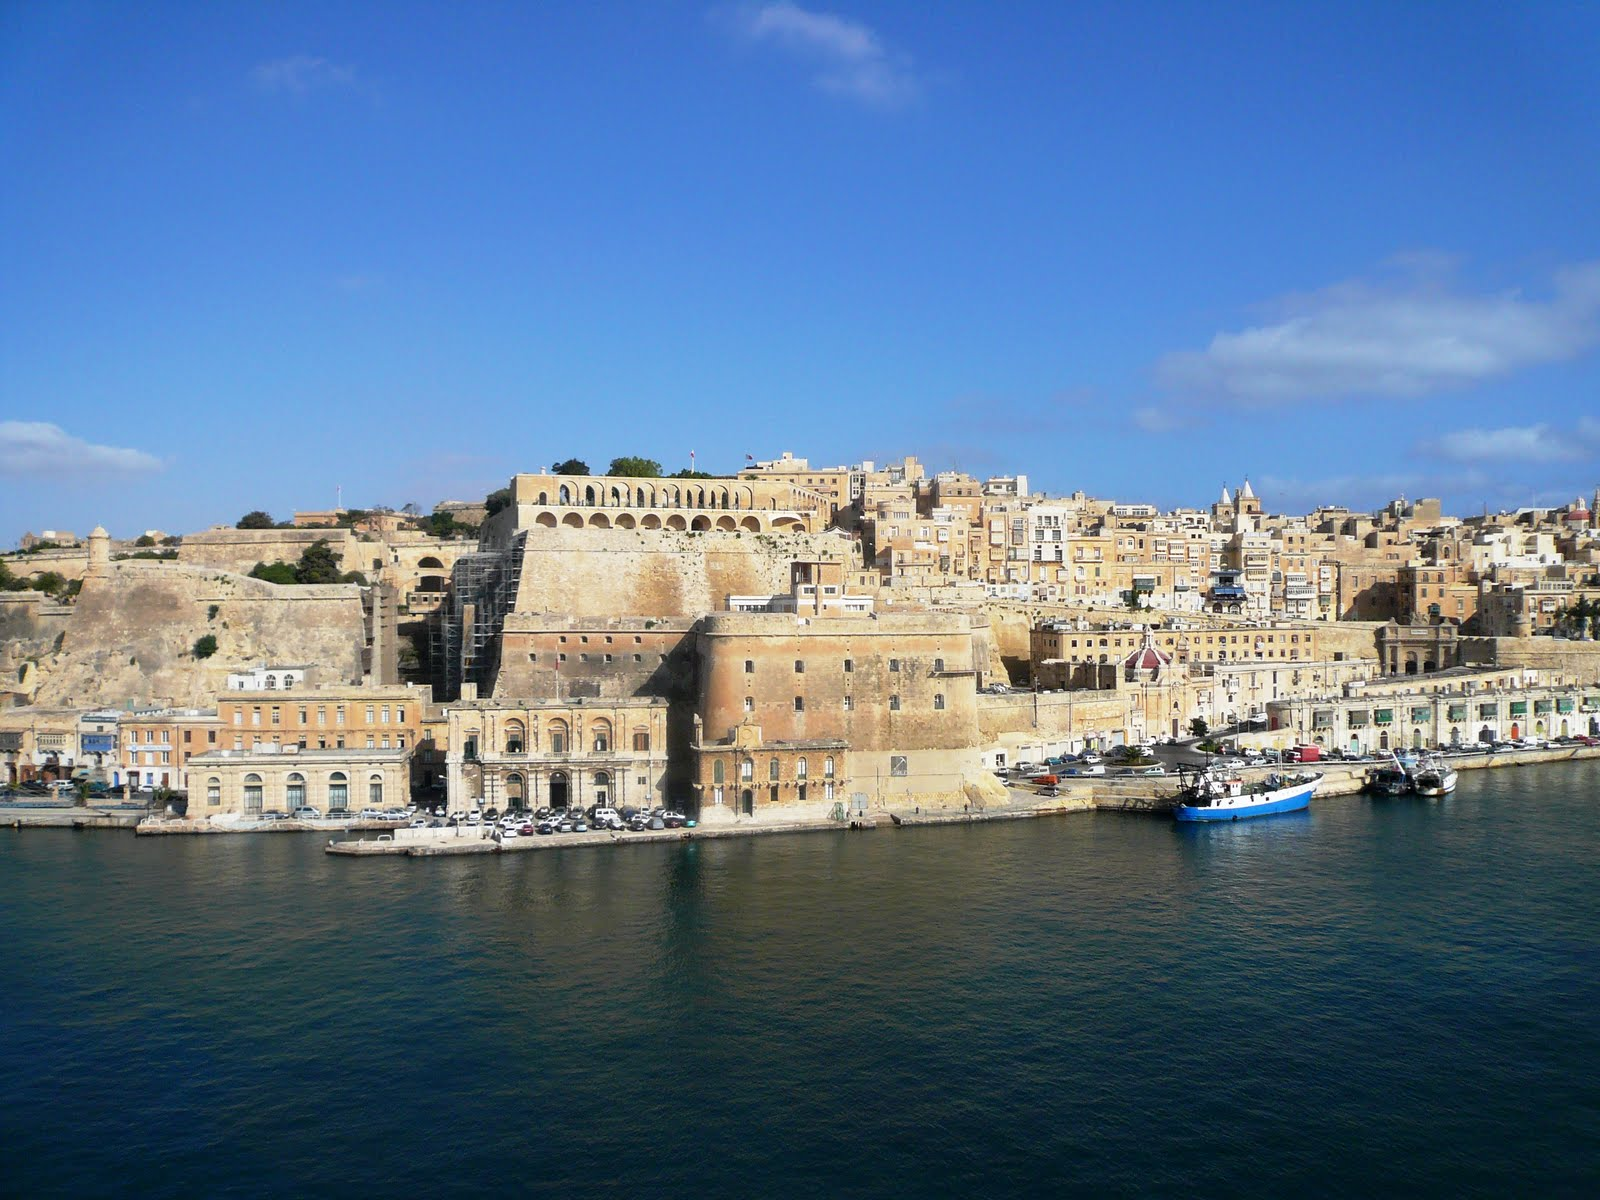 Malta – Great destination for sun, sand and history